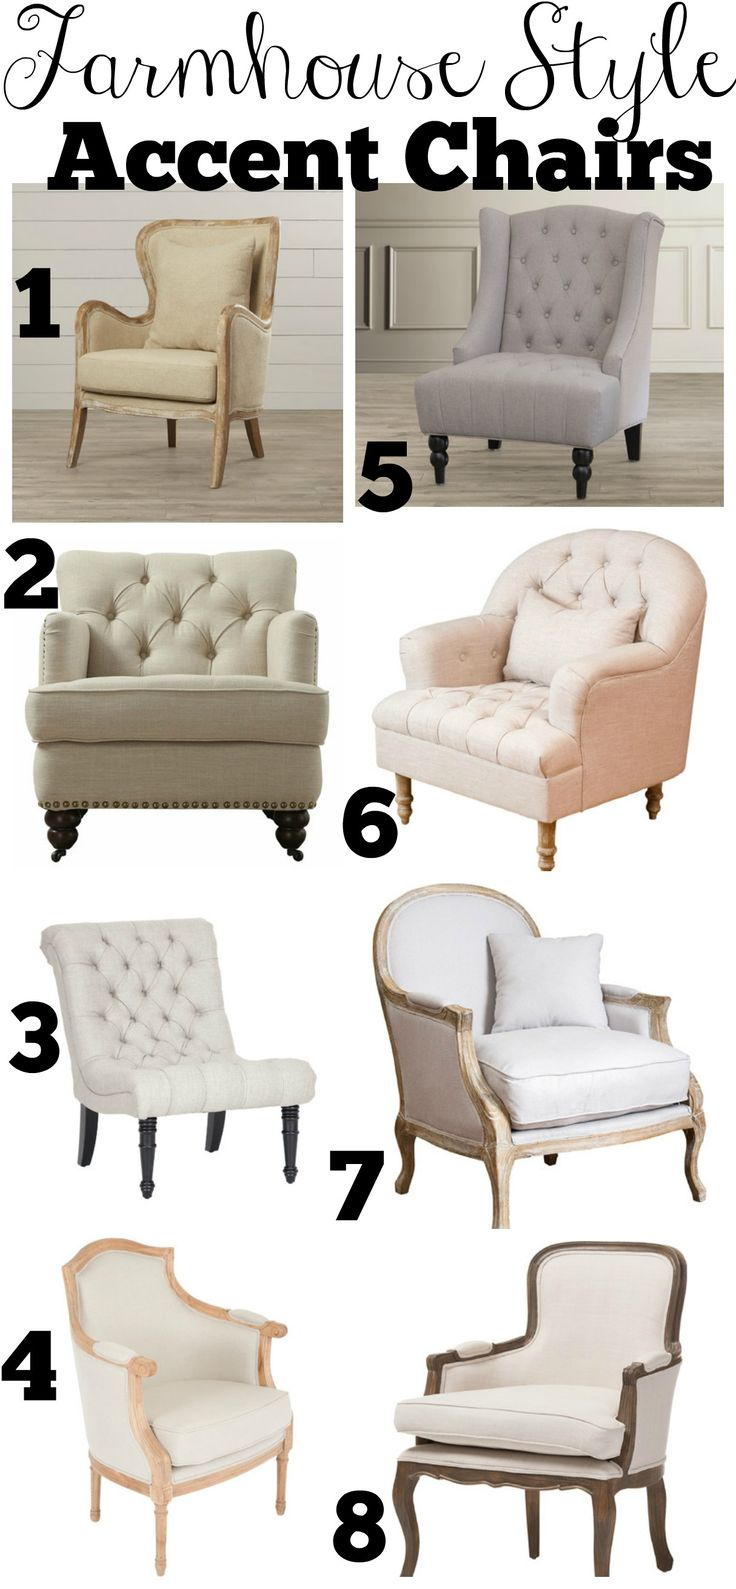 Best 25 Styling chairs ideas on Pinterest Furniture styles